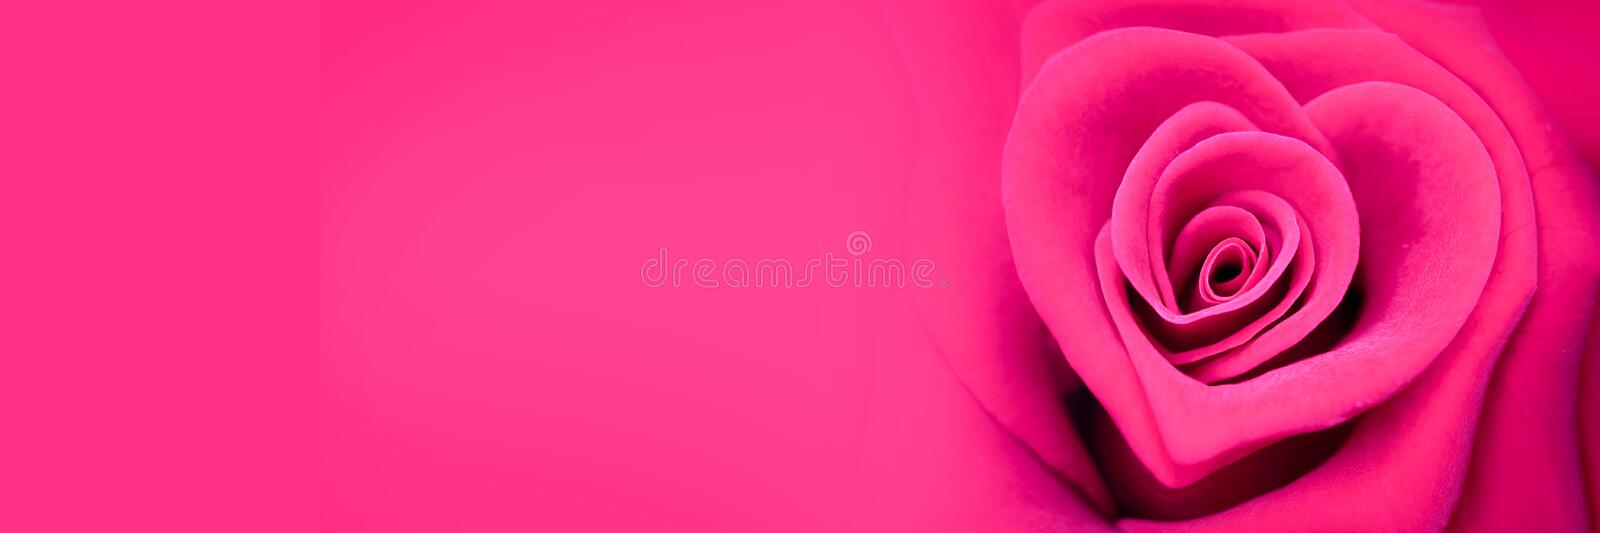 Pink rose in the shape of a heart, valentines day banner royalty free stock photography